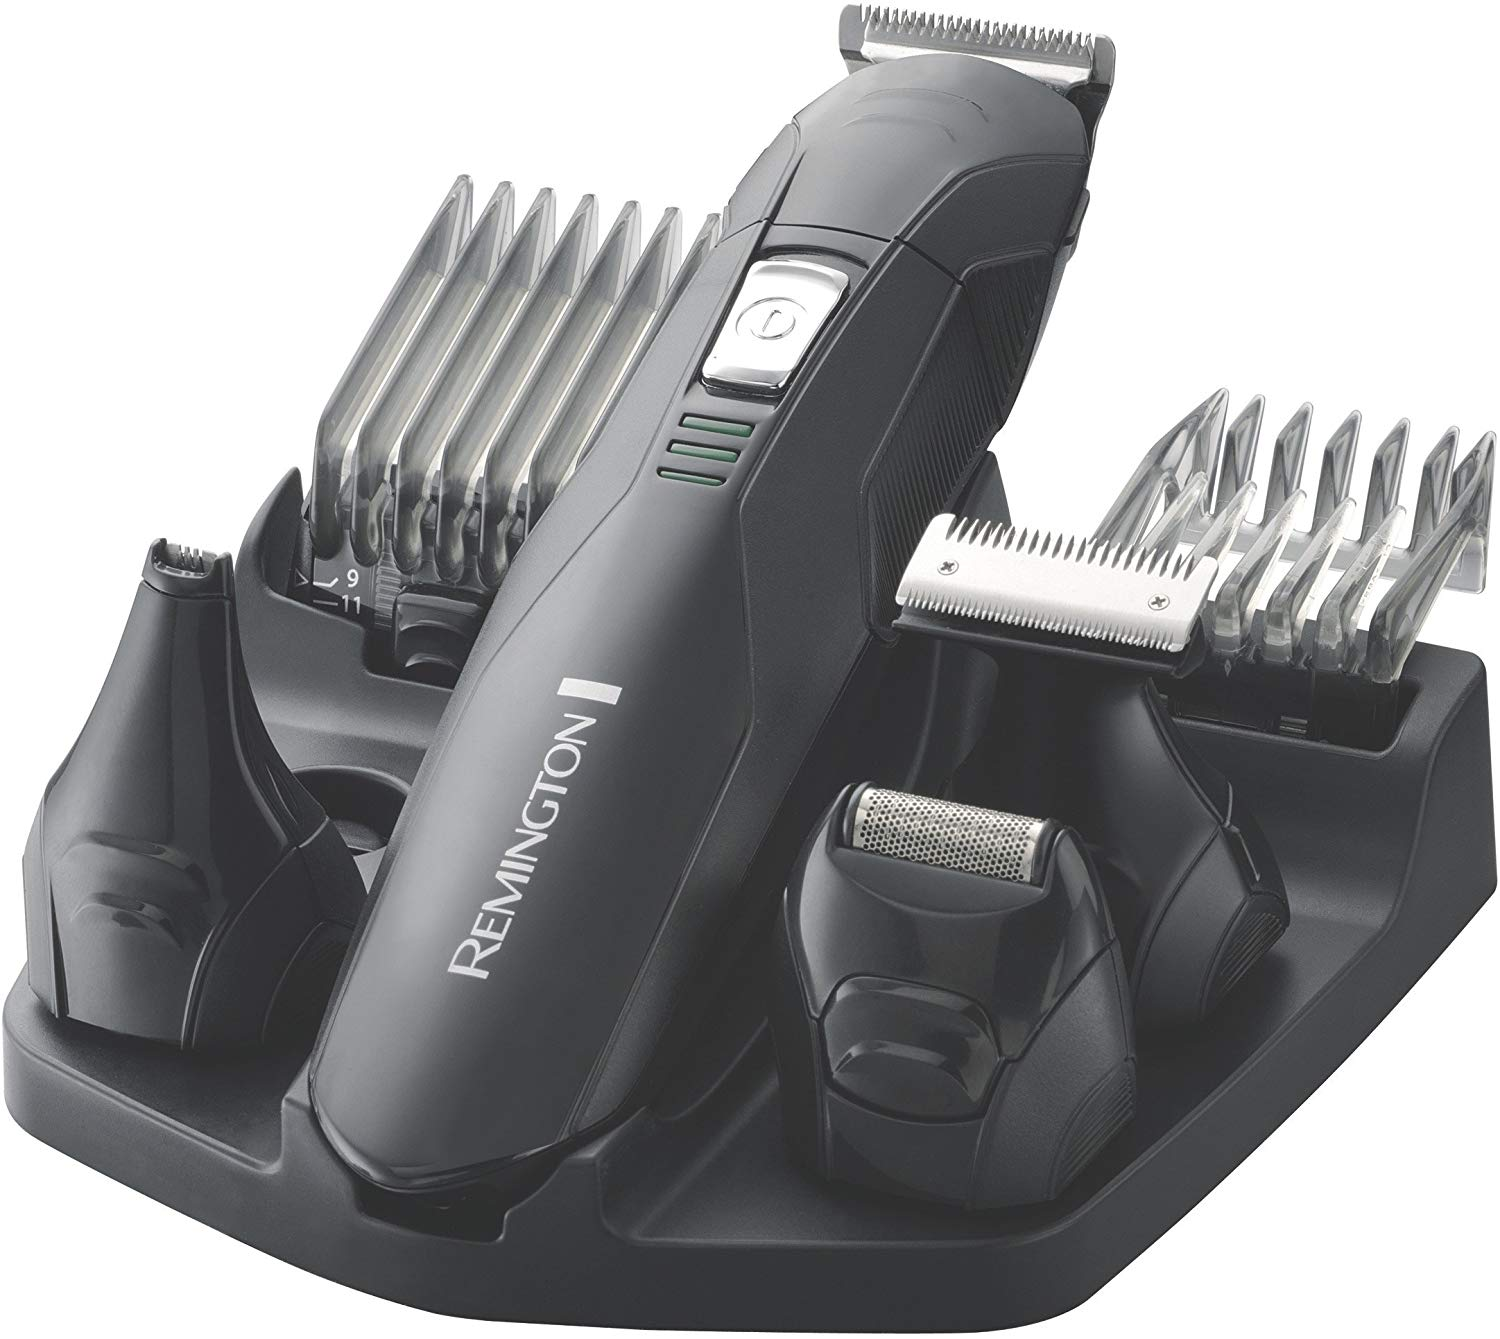 Titanium All in One Groom Kit Cordless PG6030 | Remington